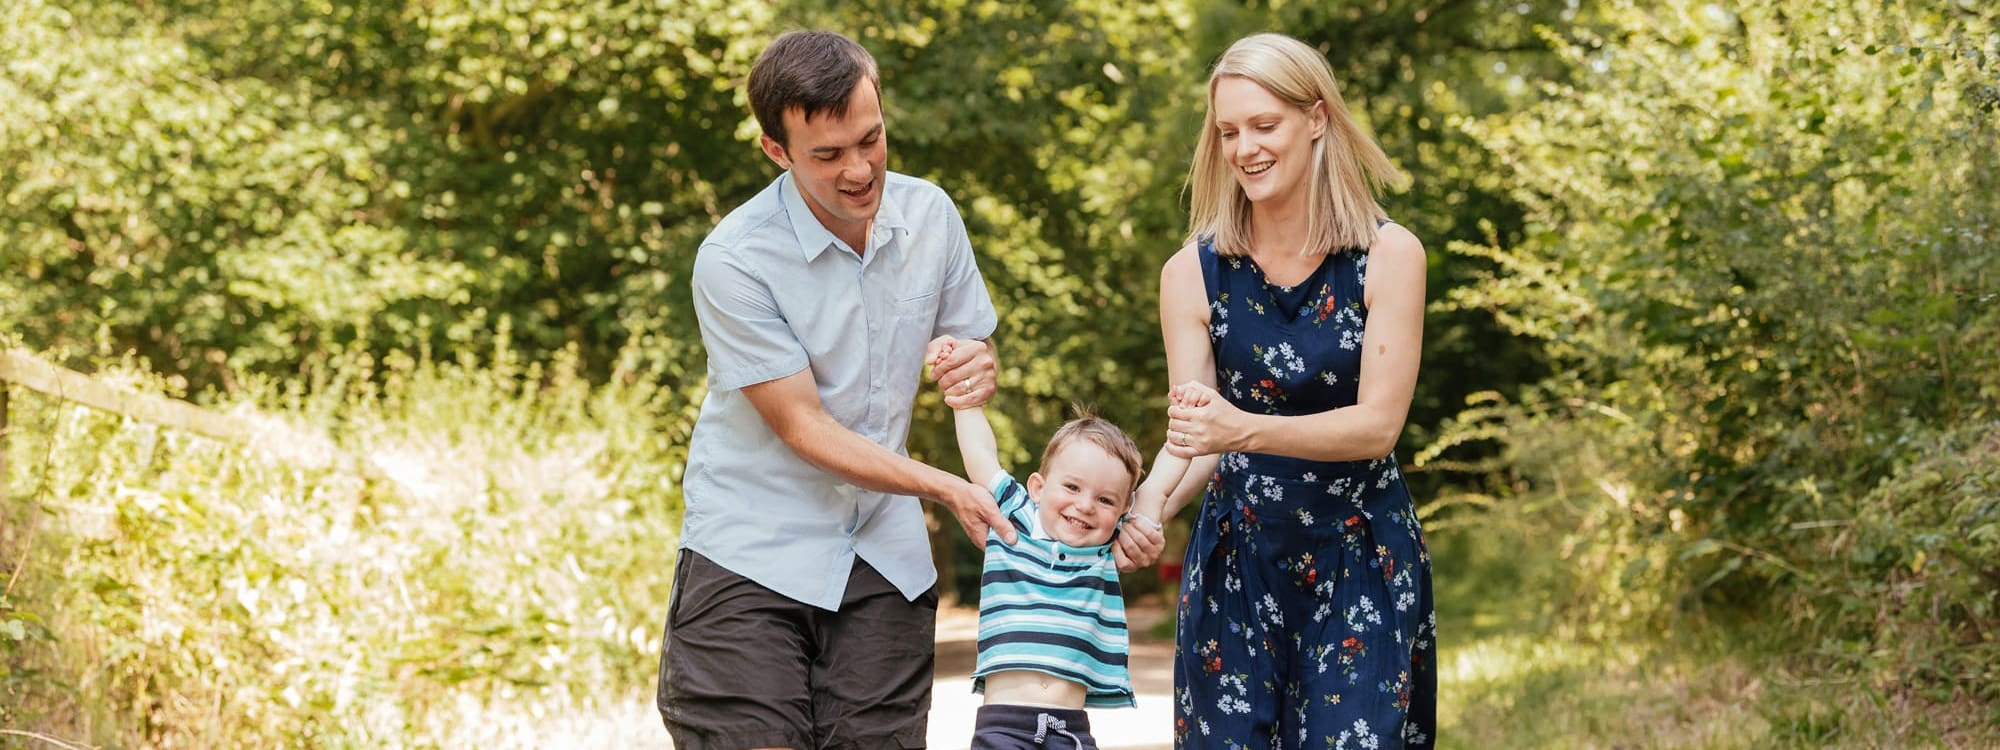 Family play with young son in Forrest in cute family photography Essex